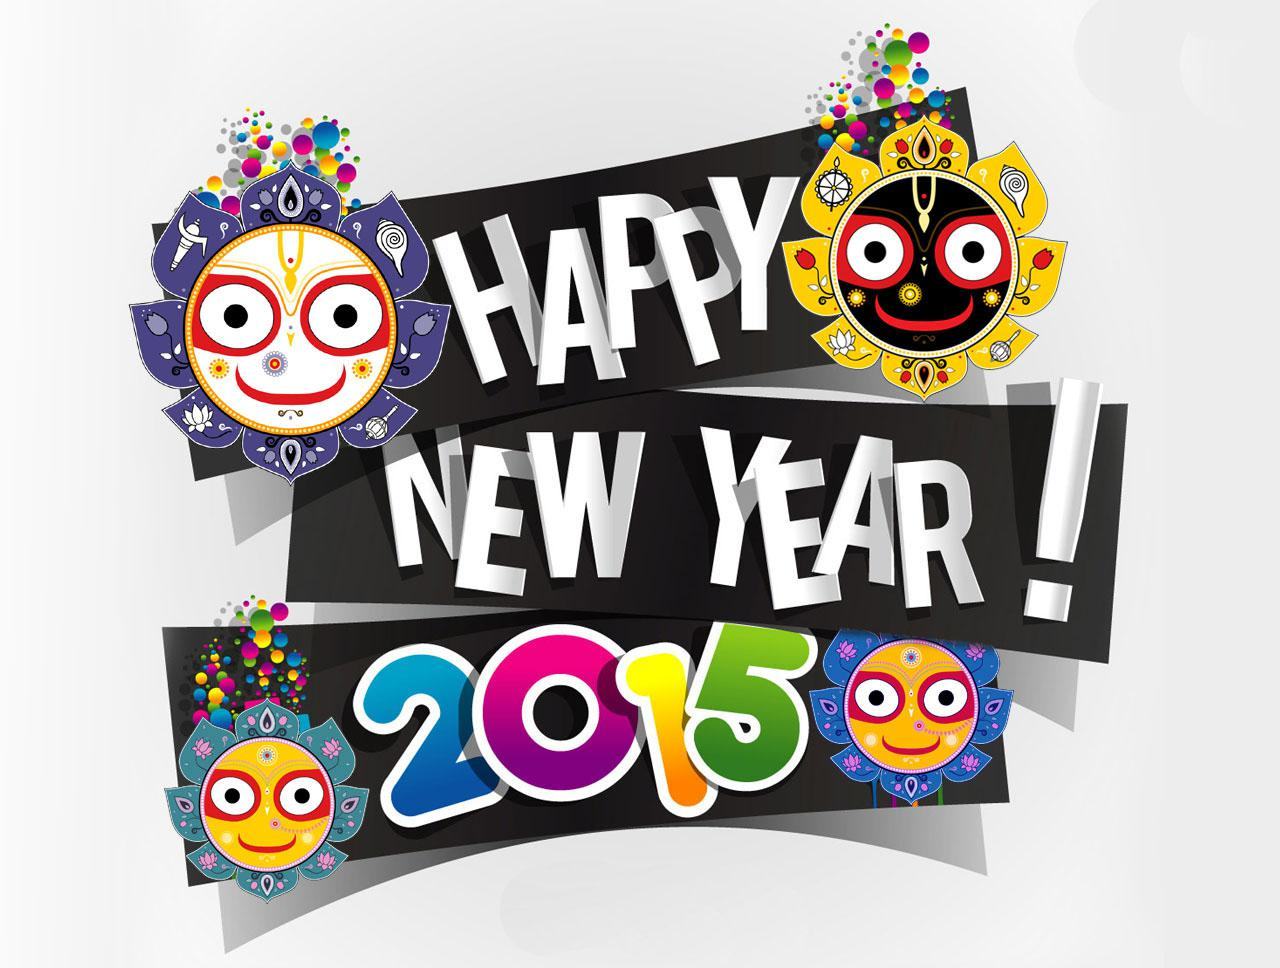 1280x968 Happy New Year 2015 Clip Art Images Free Download Play Apps For Pc